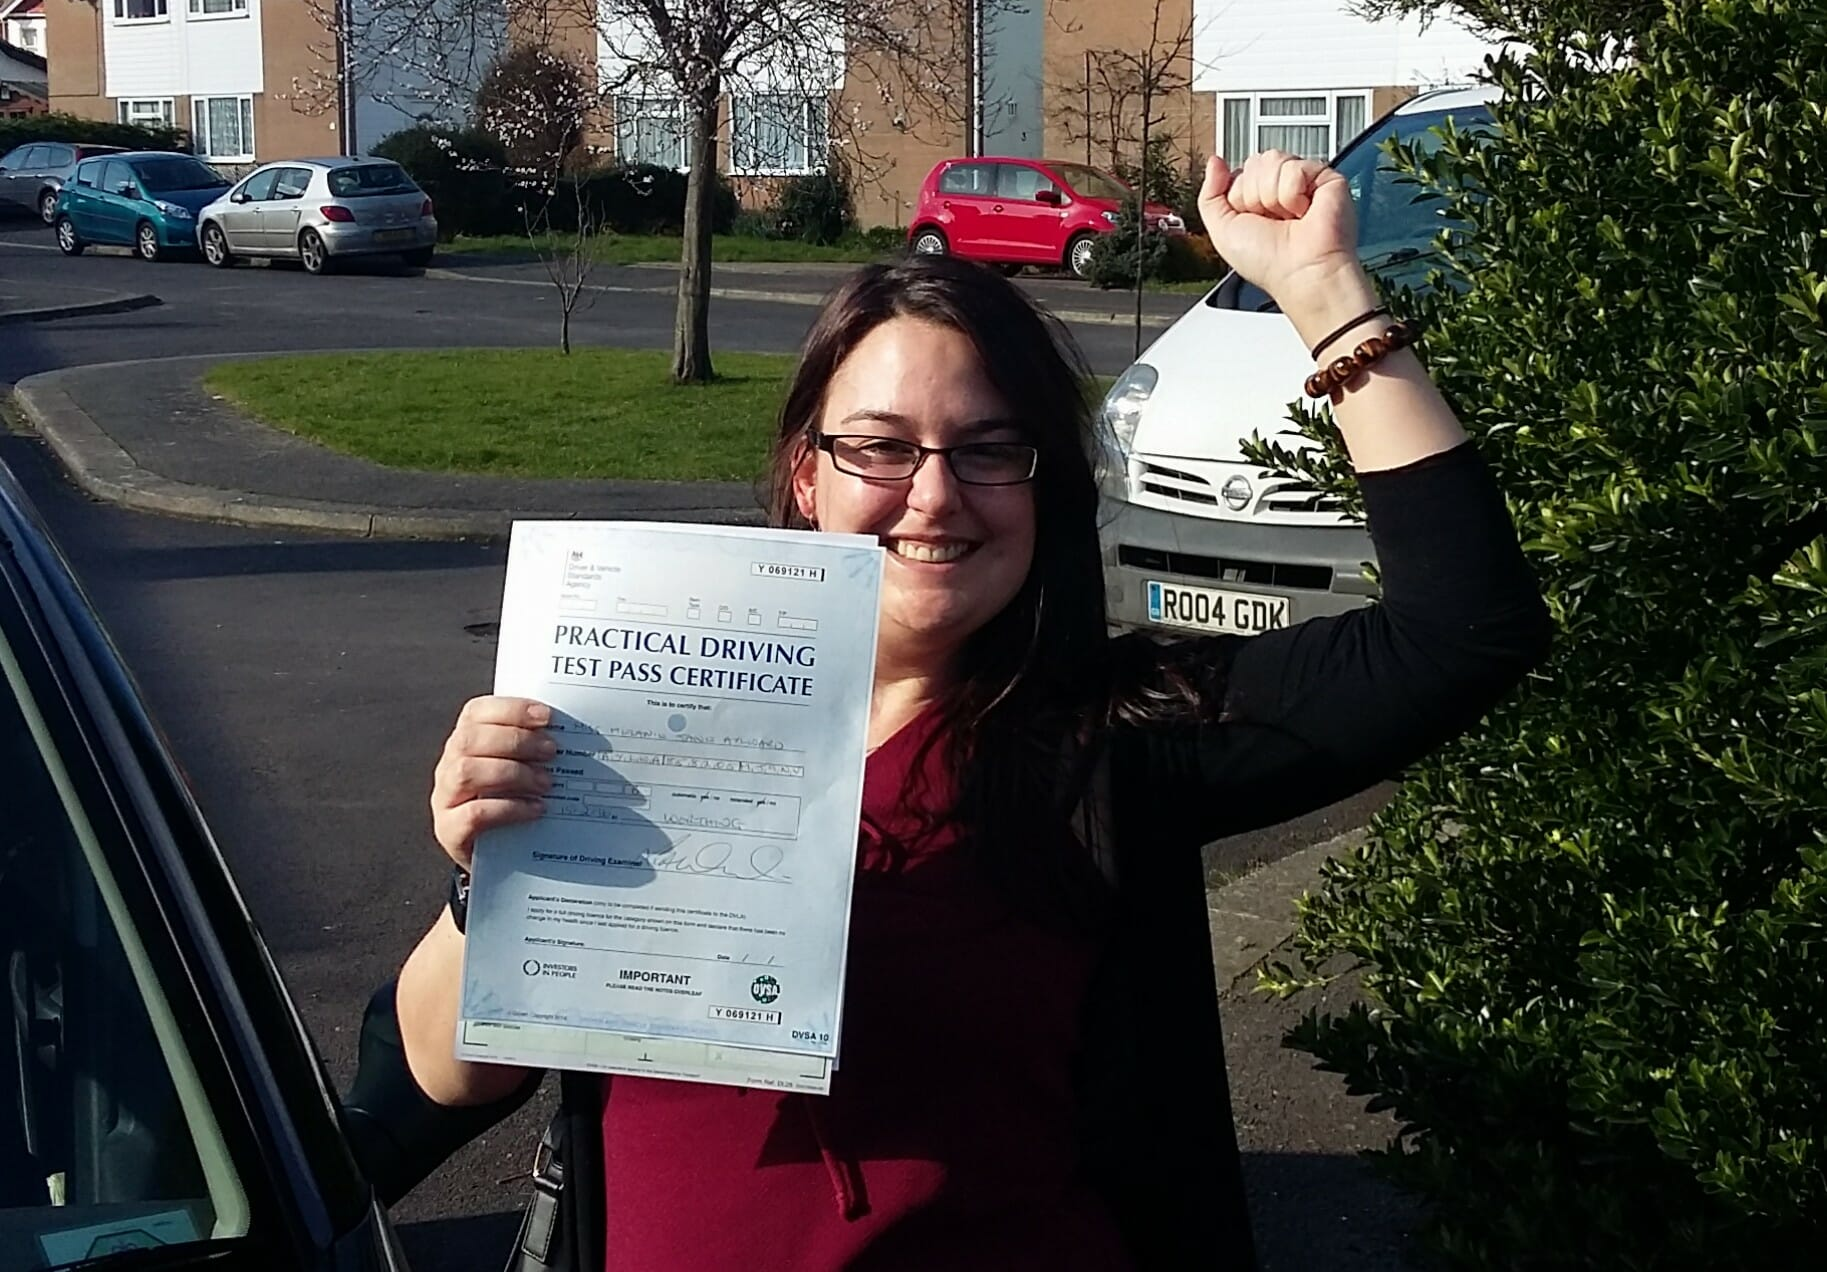 Well done to Melanie from Worthing.